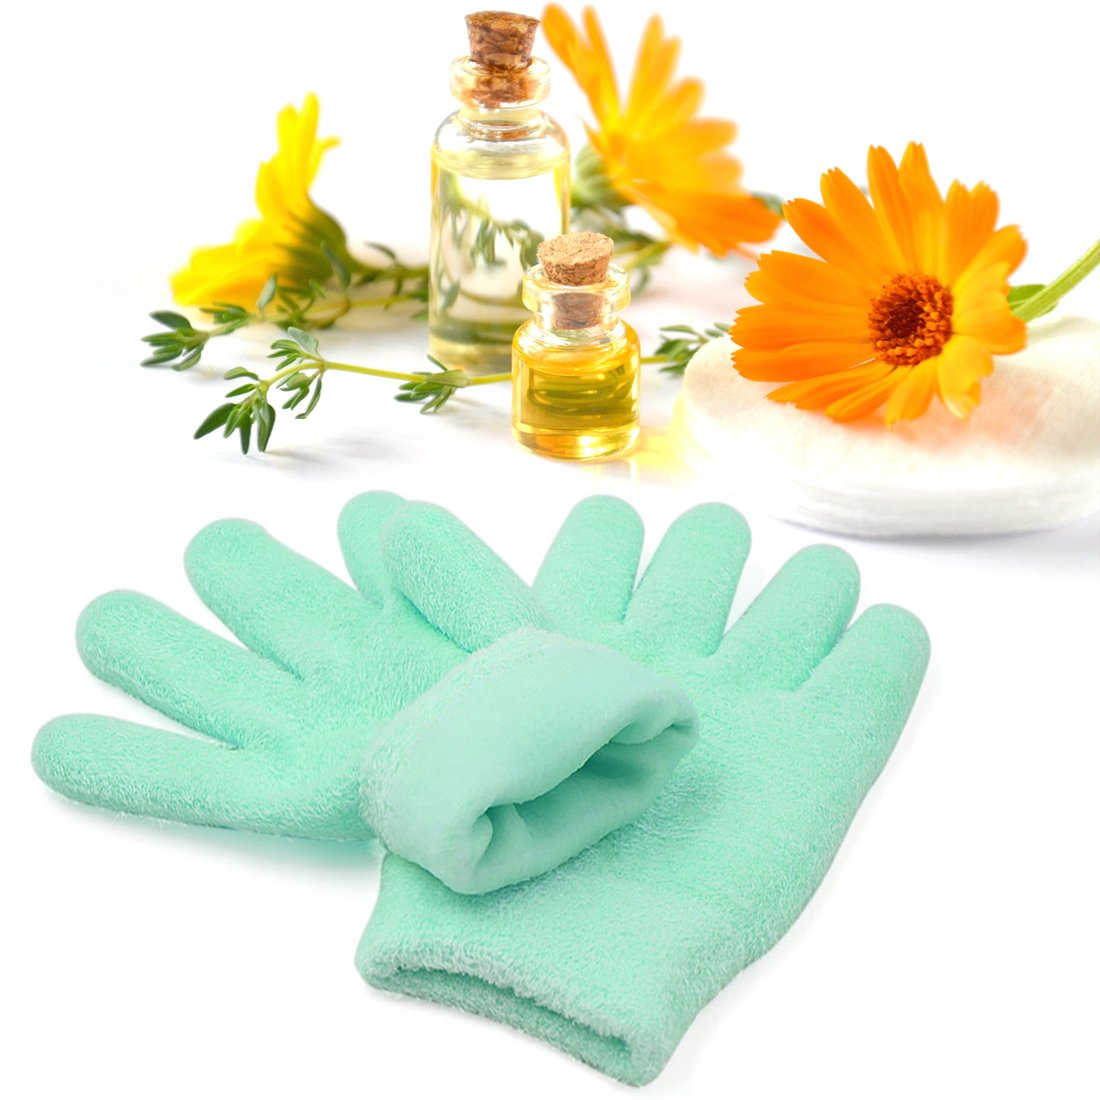 uxcell 1 Pair Soft Moisturizing Gel Gloves Cover Sleeves Dry Rough Cracked Hand Skin Care Comfy Recovery Spa Treatment Gift Set Mint Green US-SA-AJD-136153